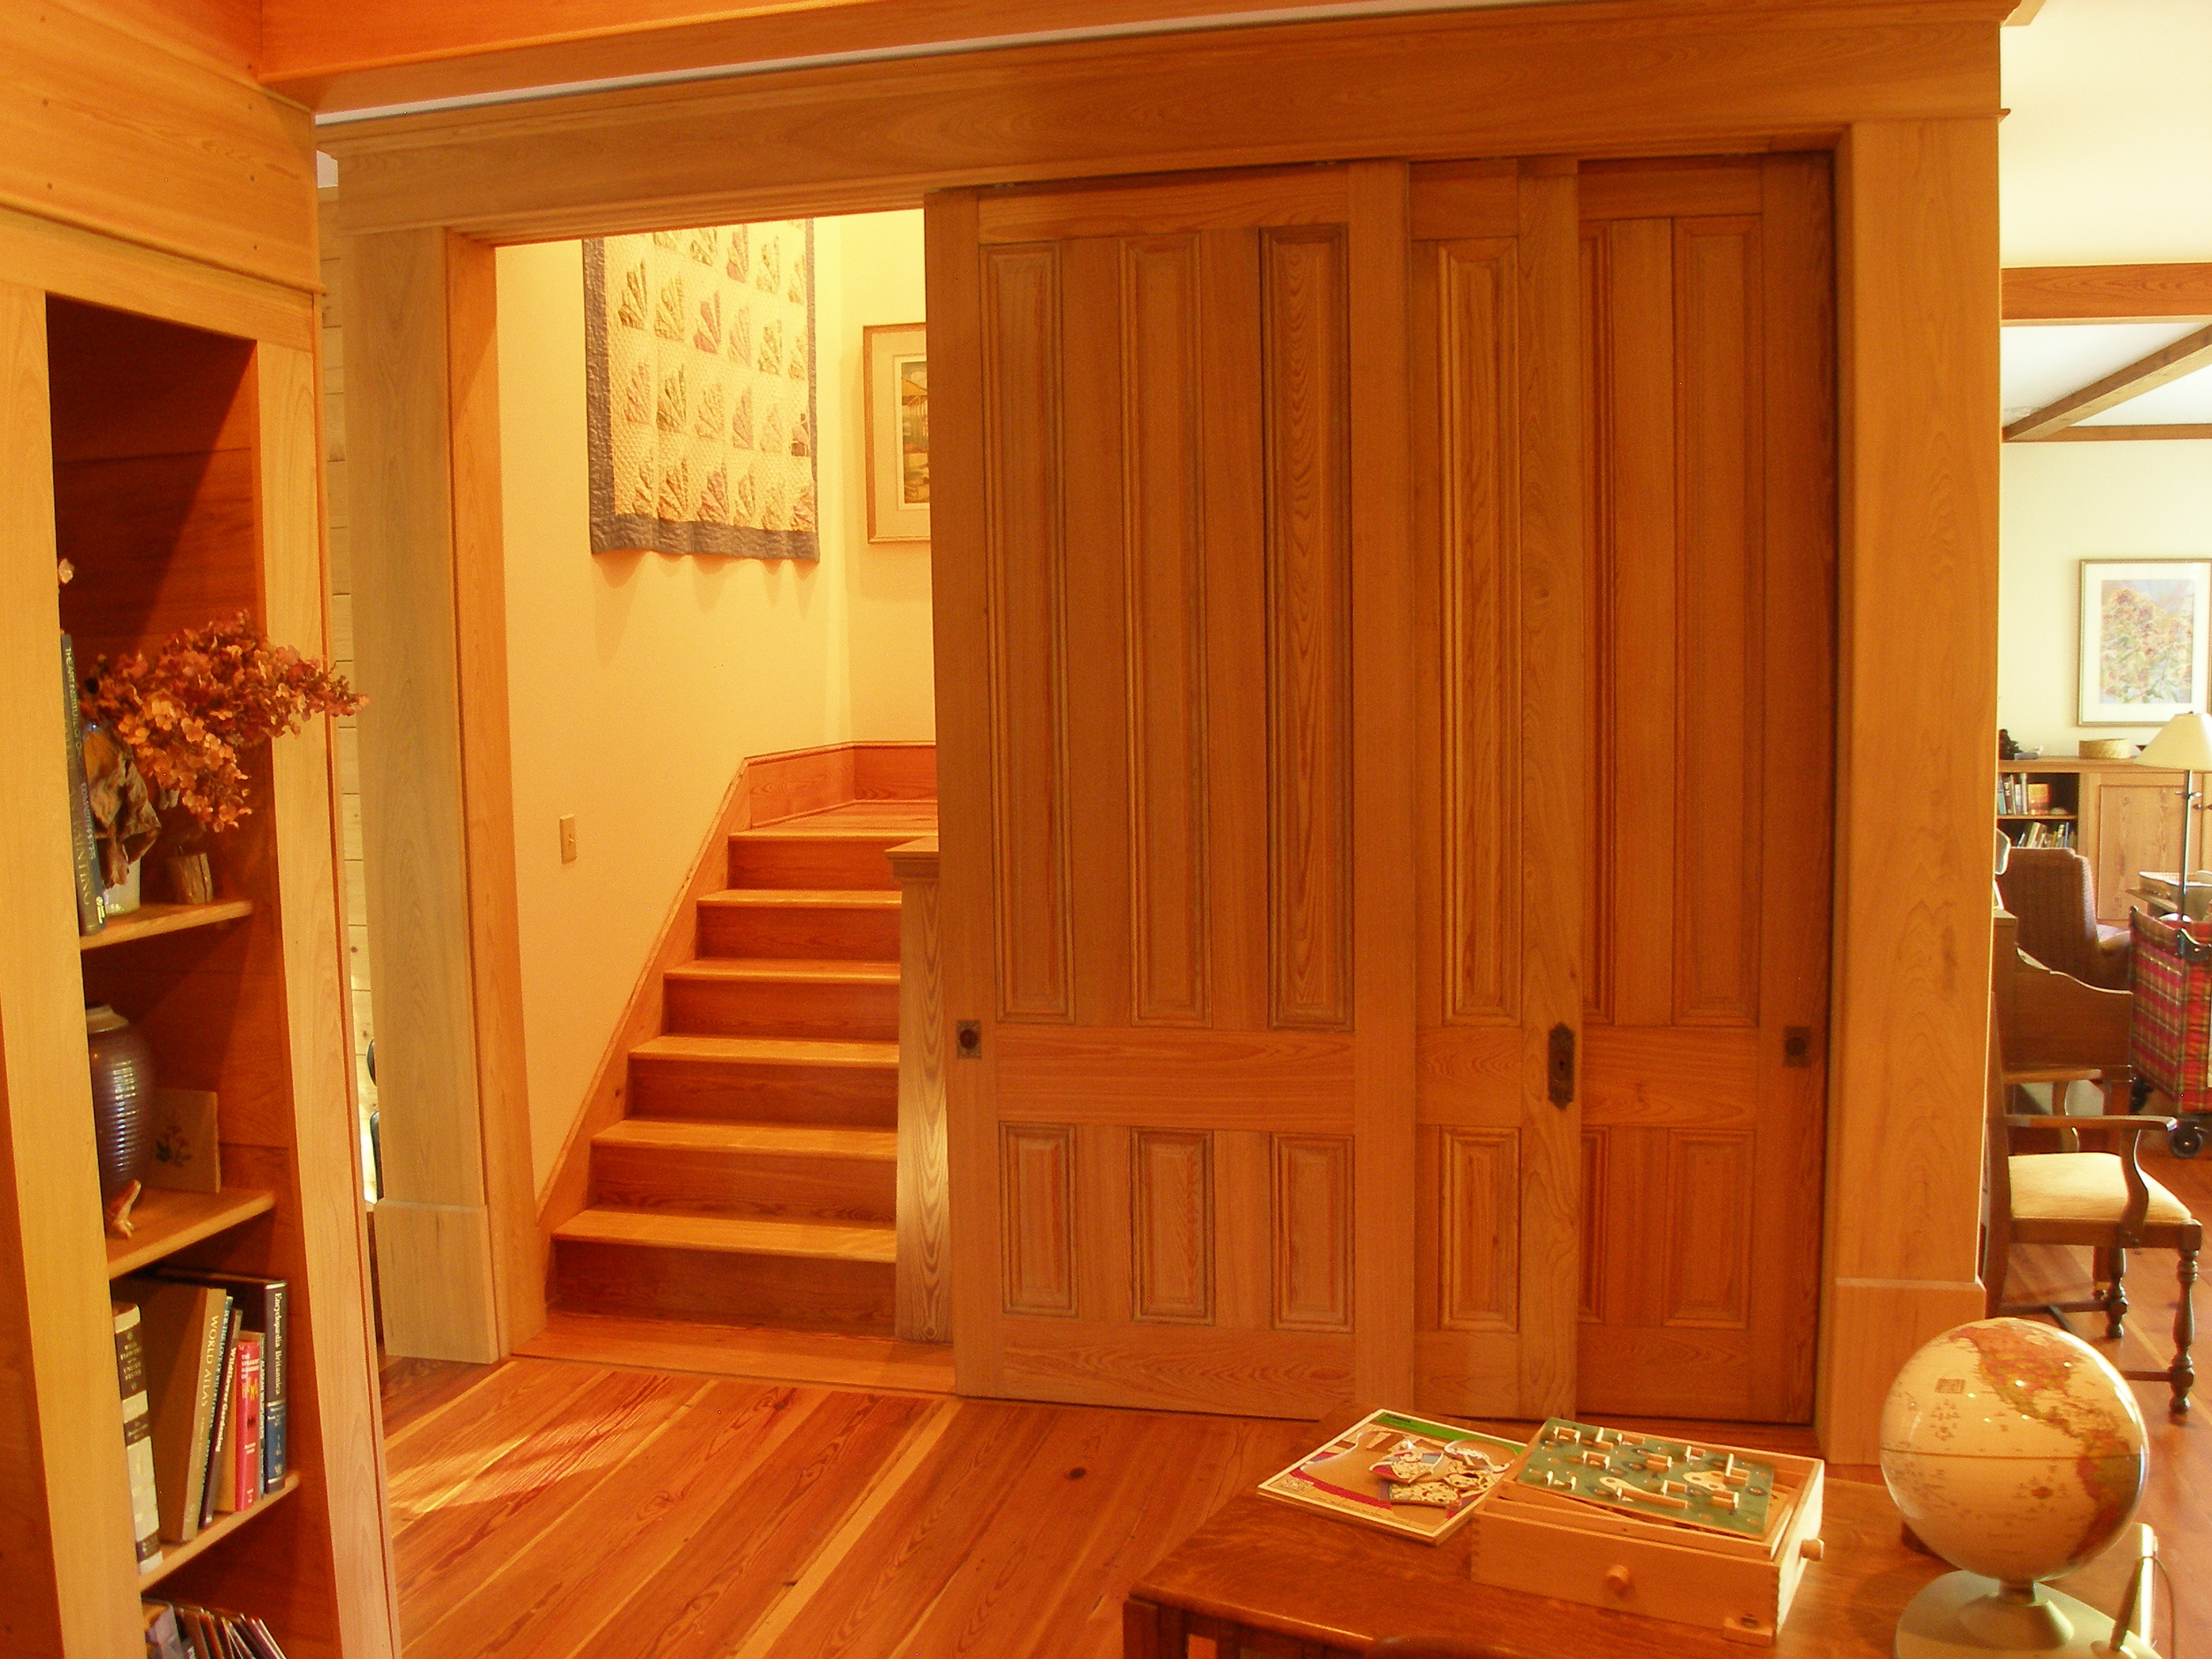 Tall cypress doors open showing stairs to guest bedroom and tower.